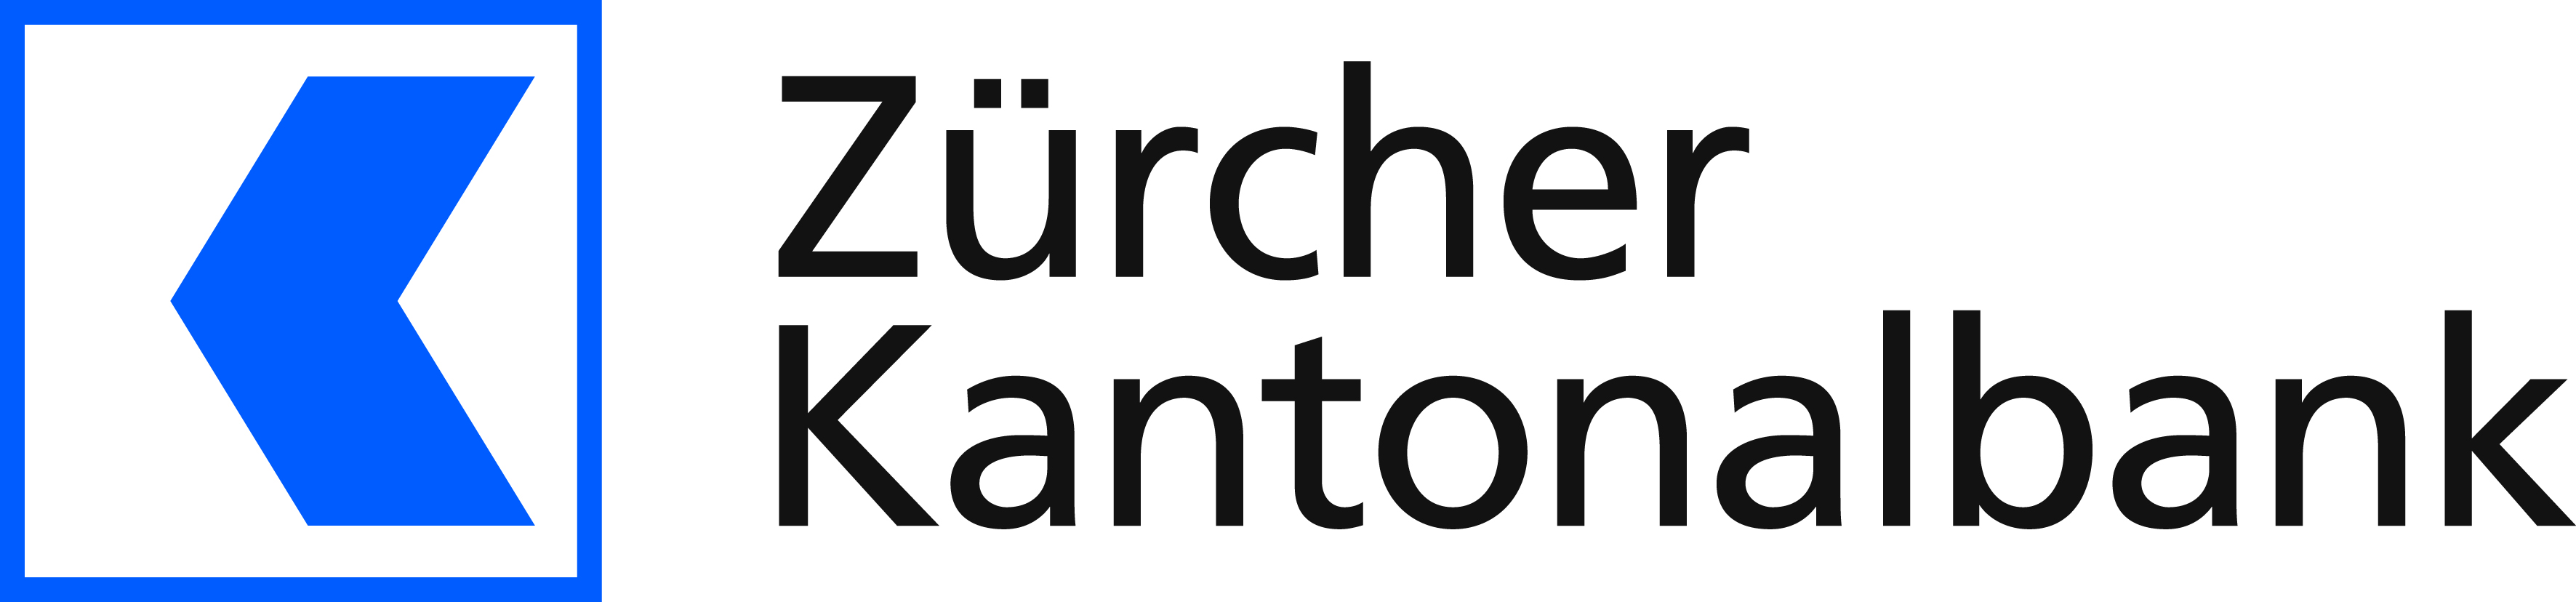 Zurcher Kantonal Bank logo